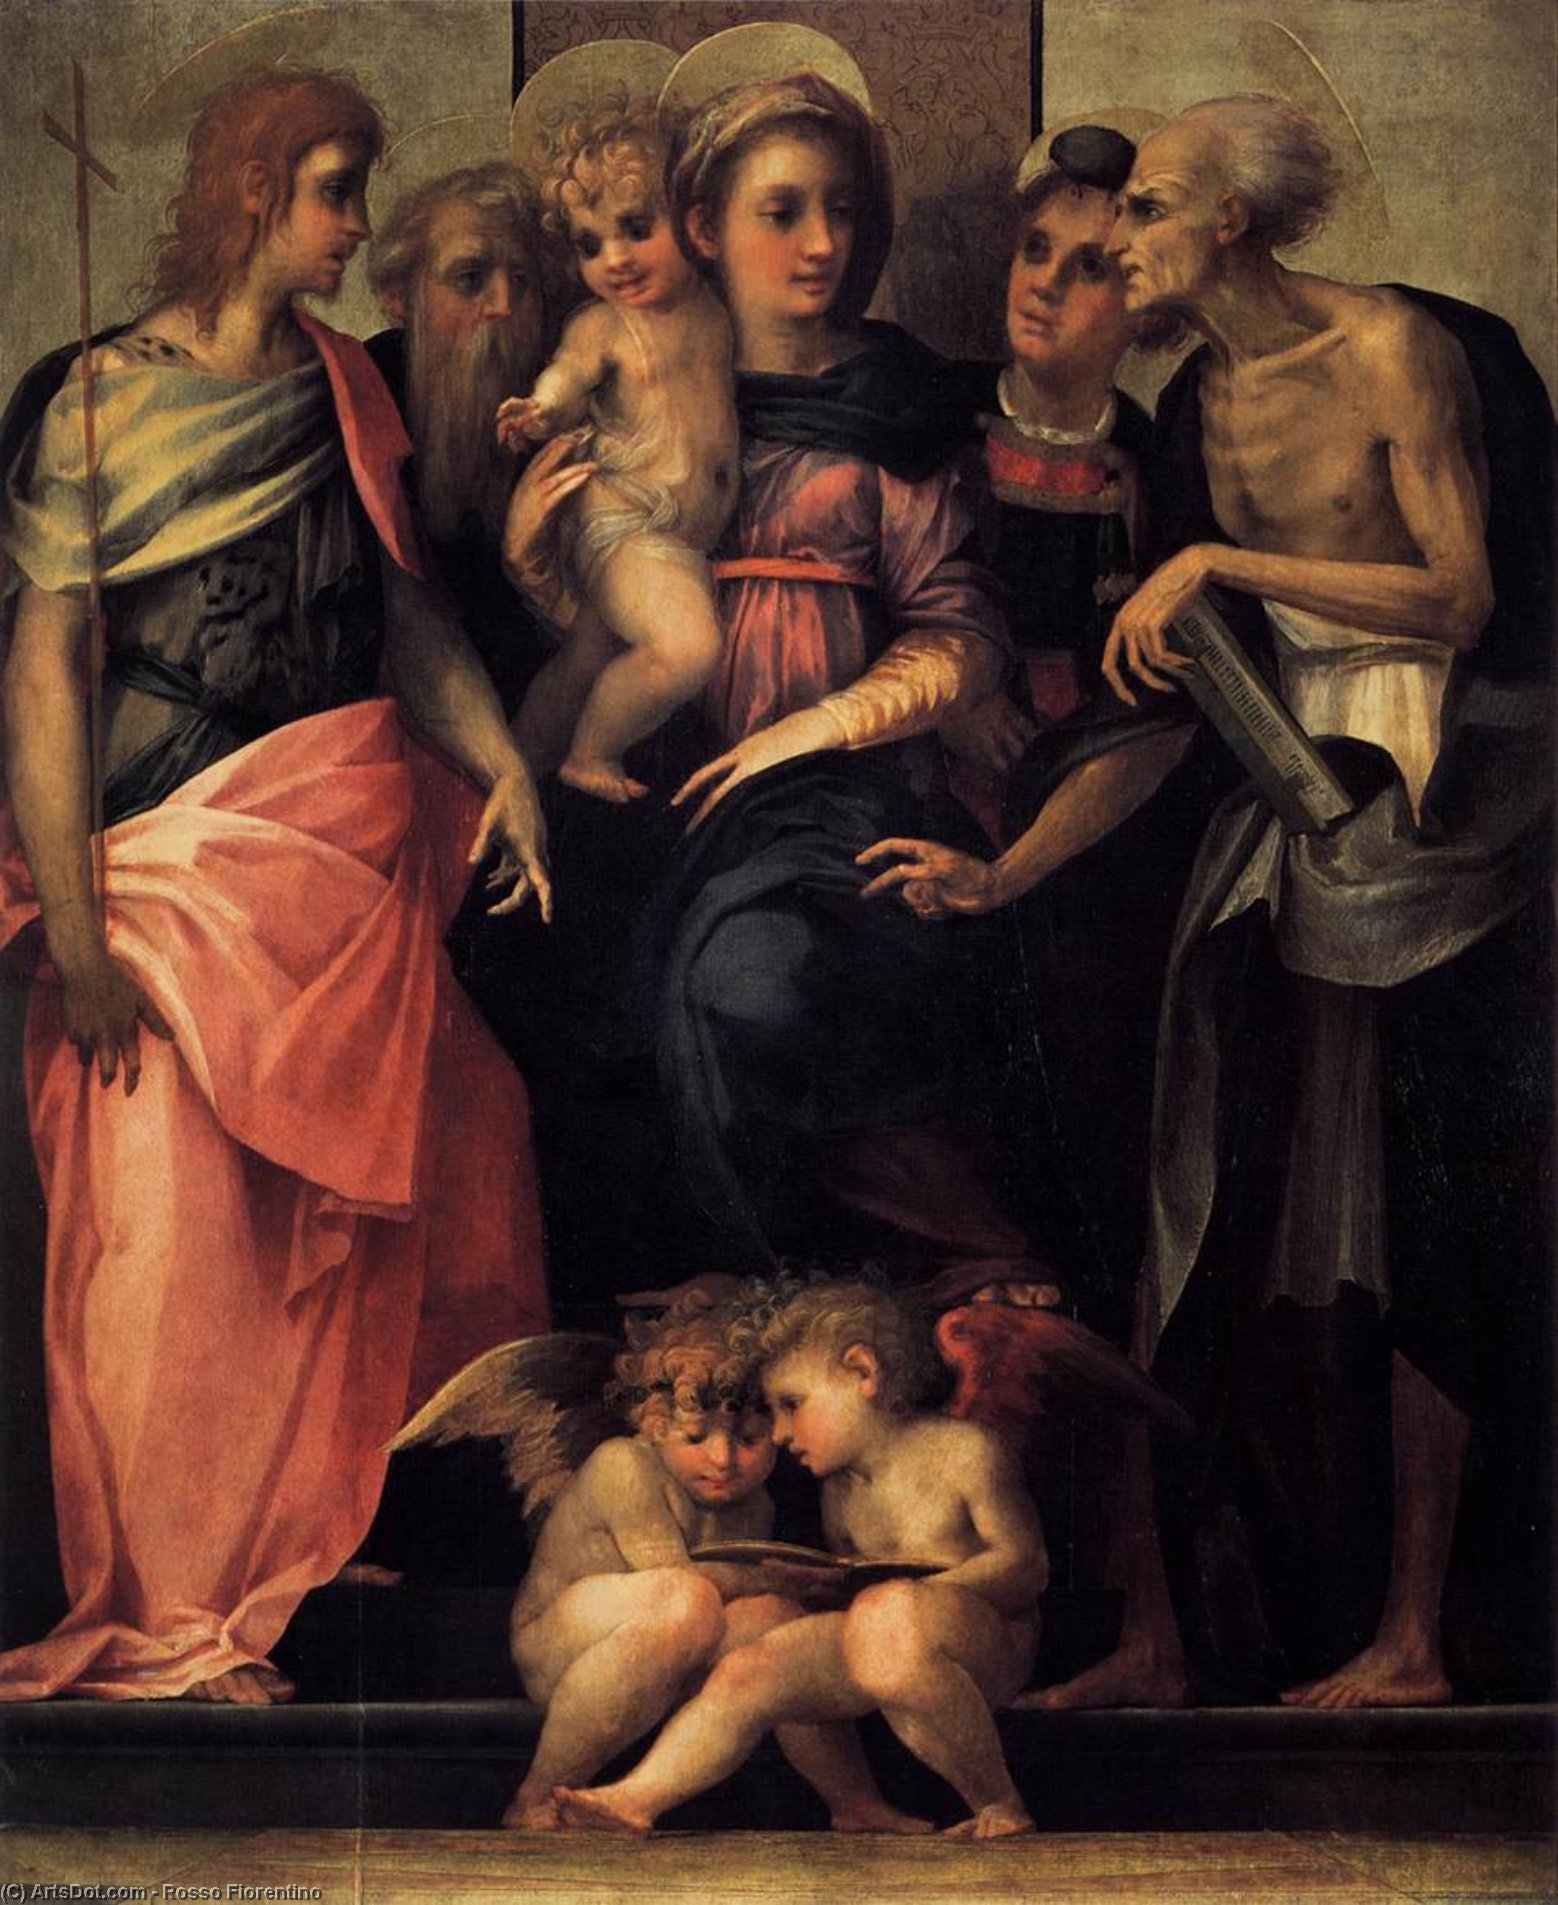 Wikioo.org - The Encyclopedia of Fine Arts - Painting, Artwork by Rosso Fiorentino - Madonna Enthroned with Four Saints